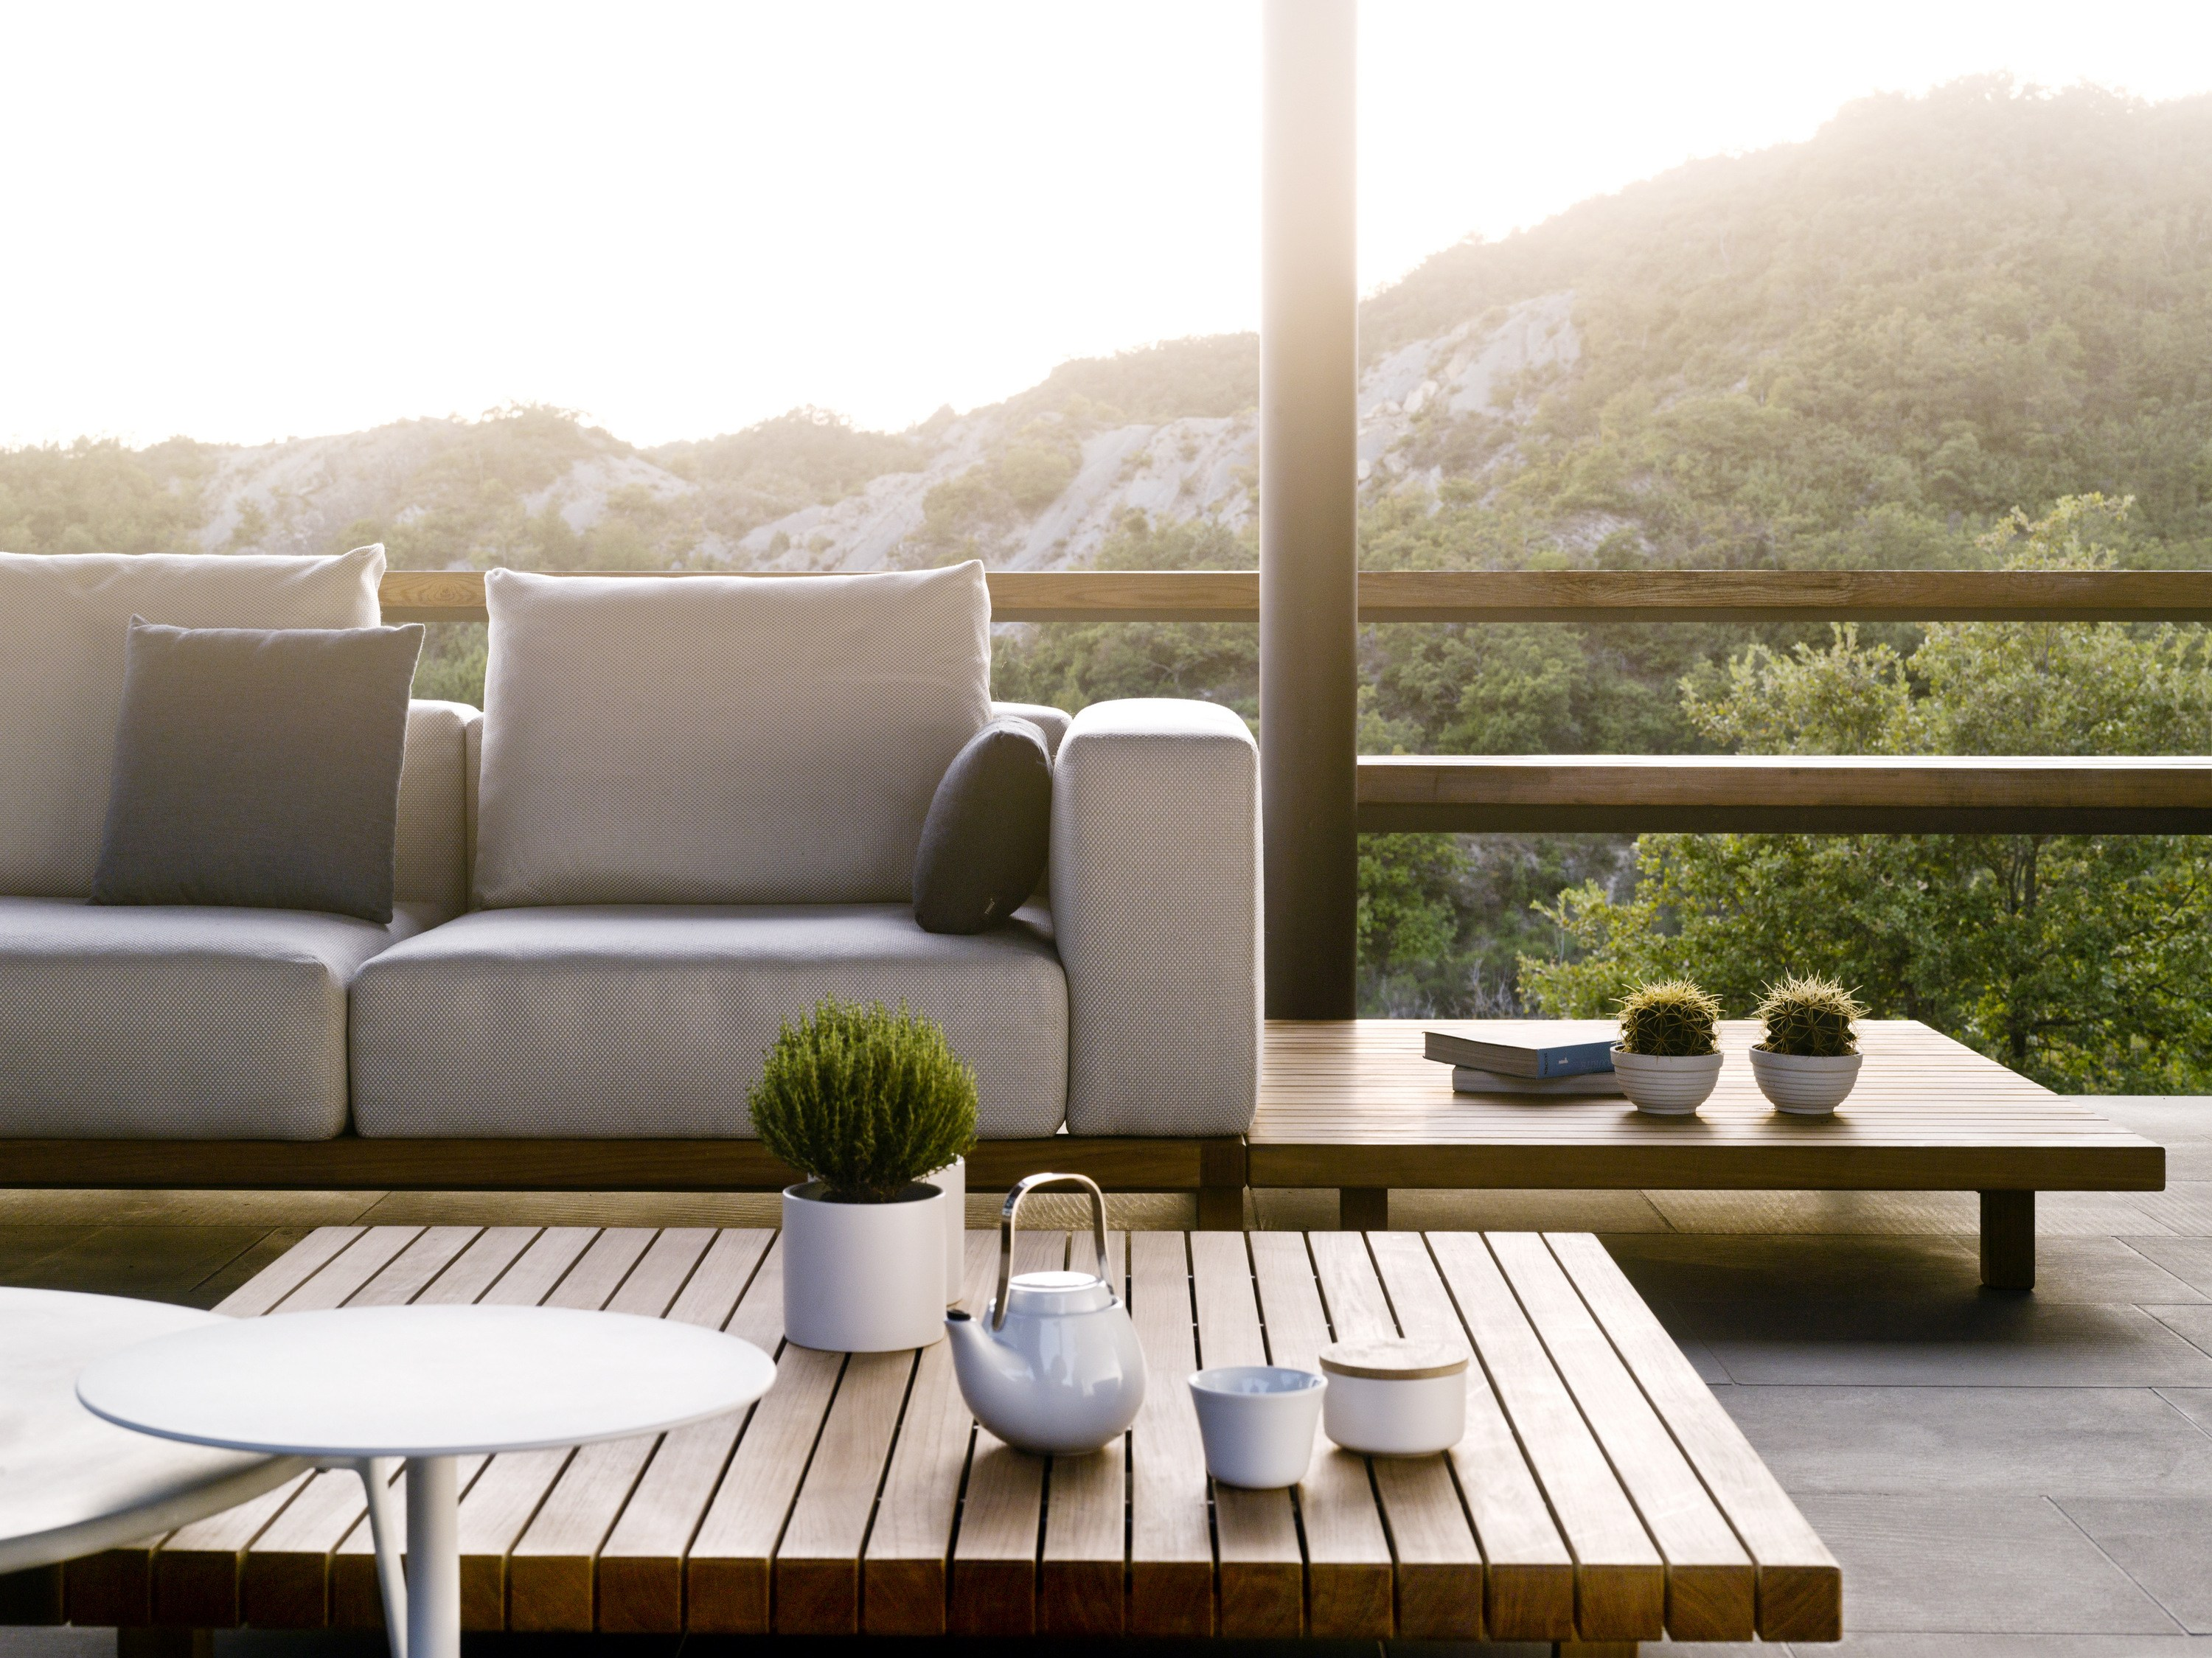 Outdoor sofa and matching coffee table in teak wood.